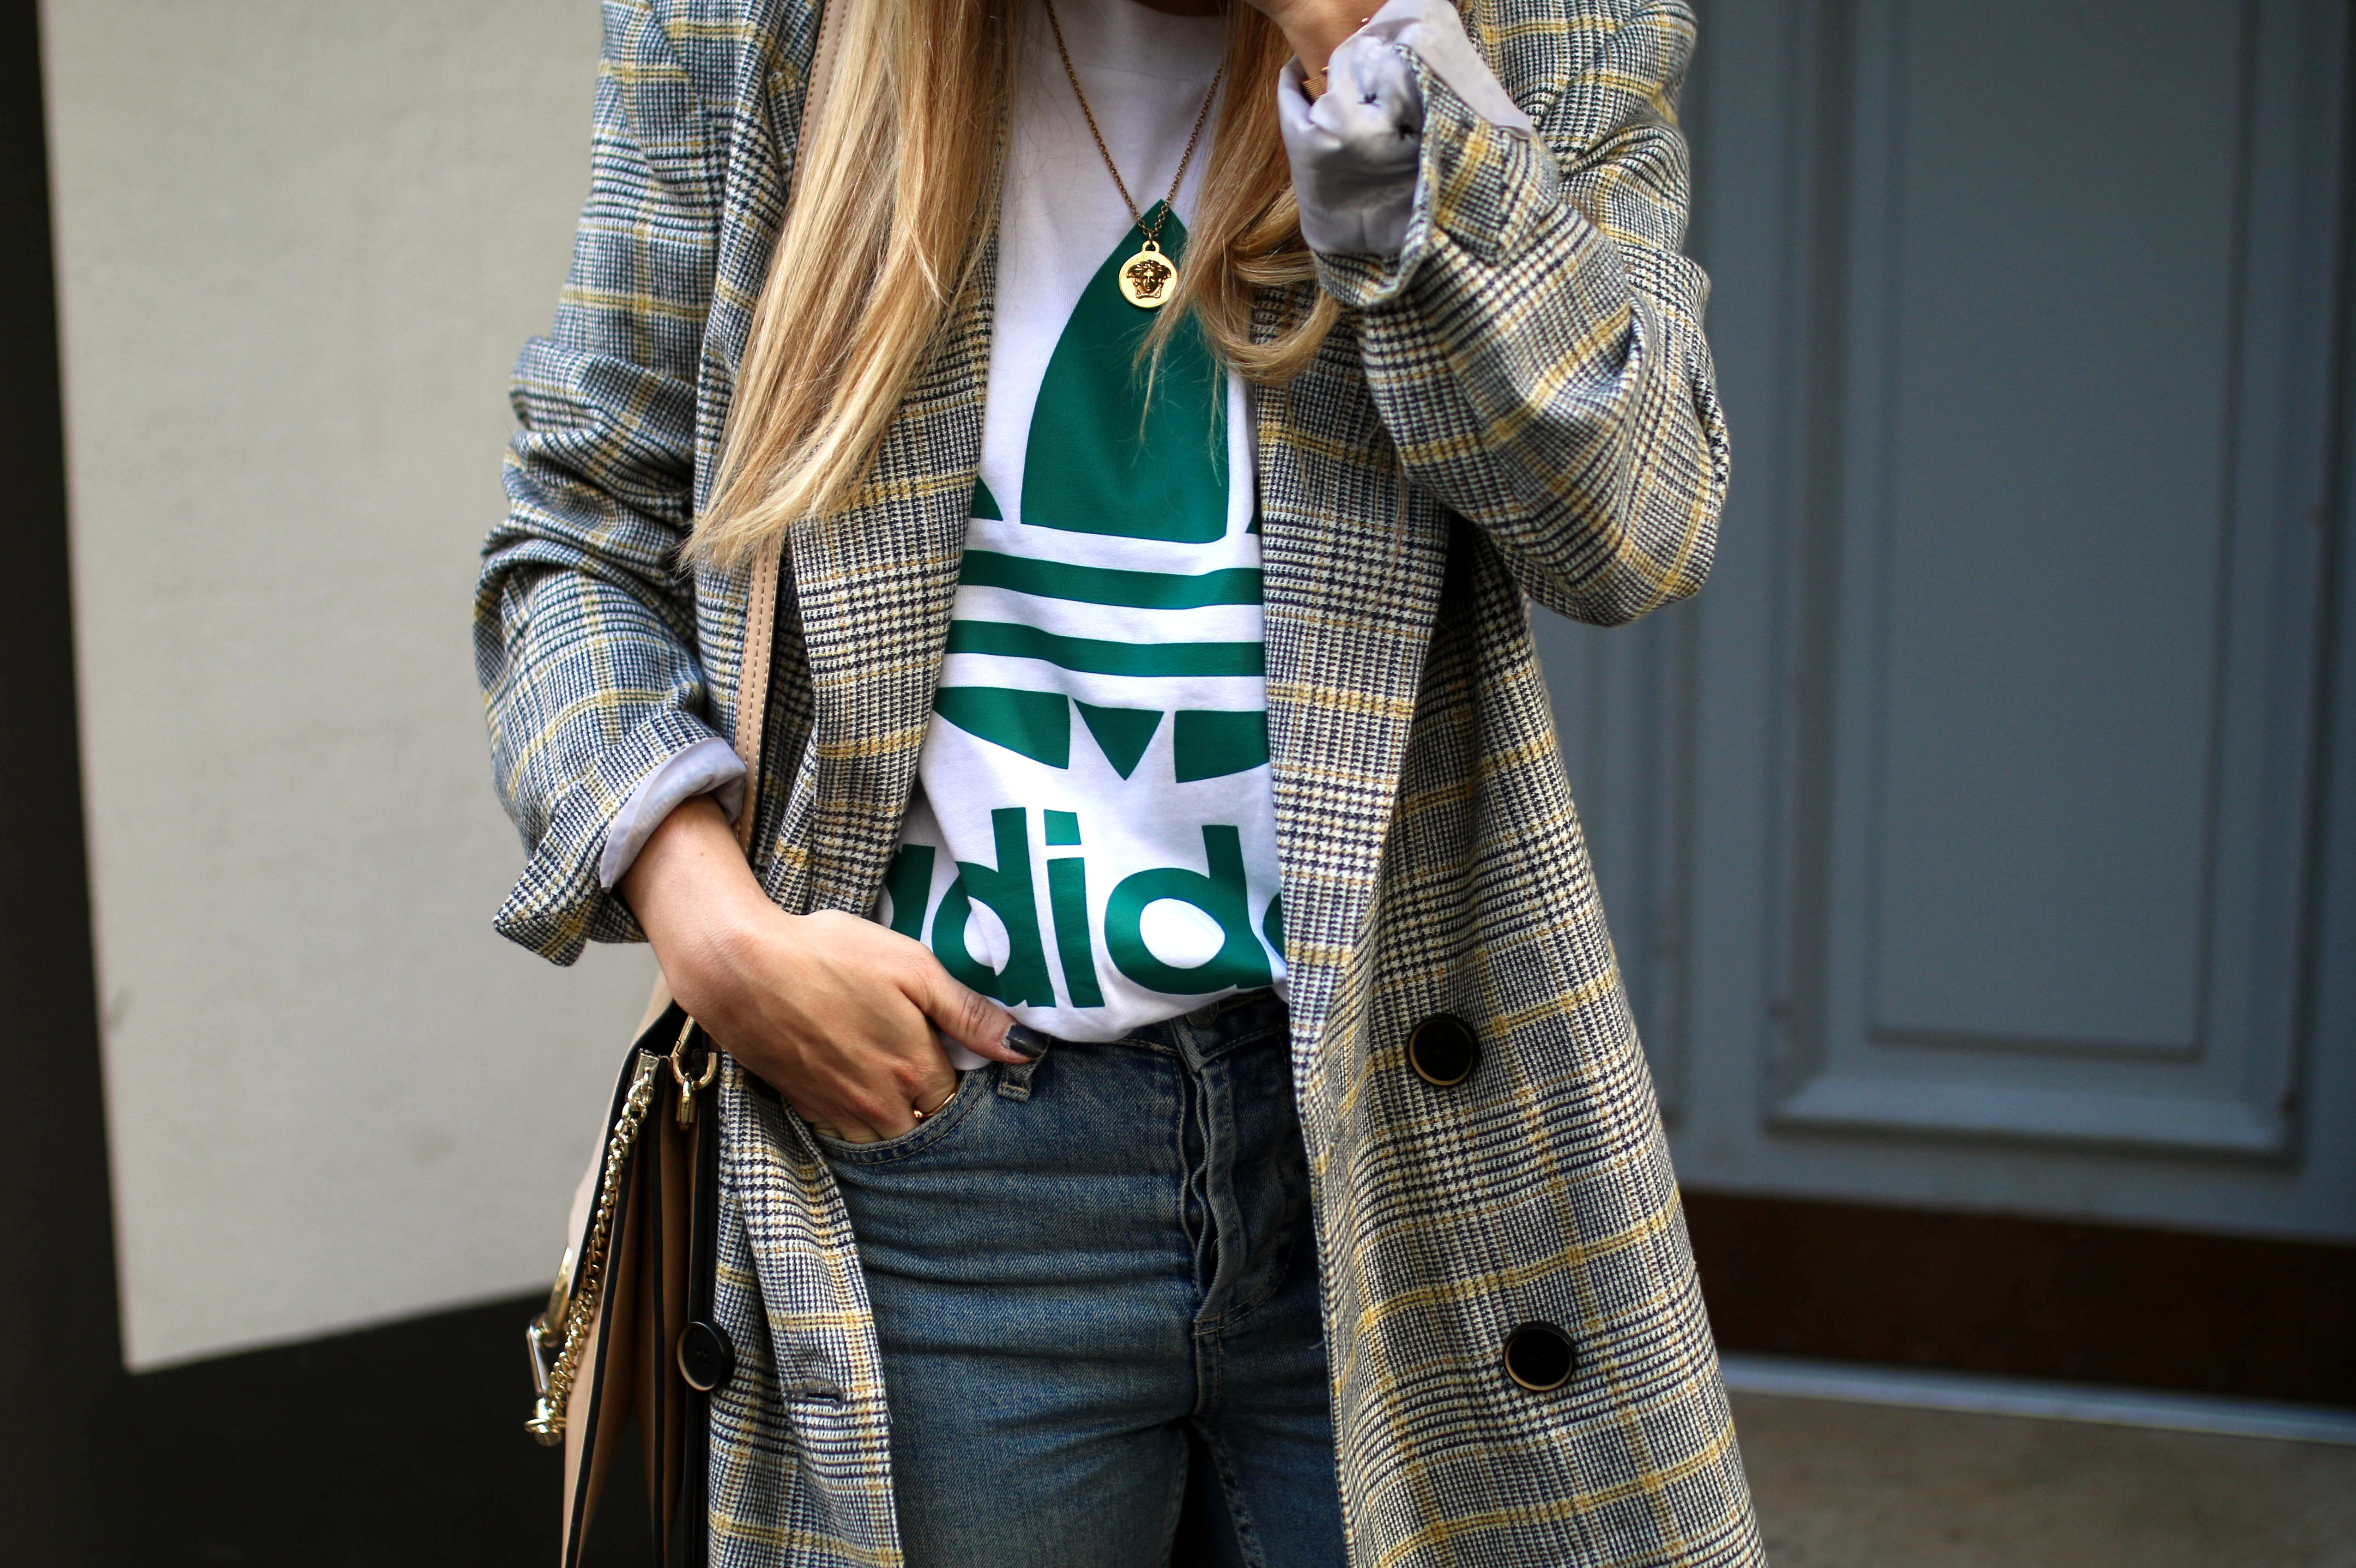 baker boy hat checked coat chloegirls outfit inspo streetstyle